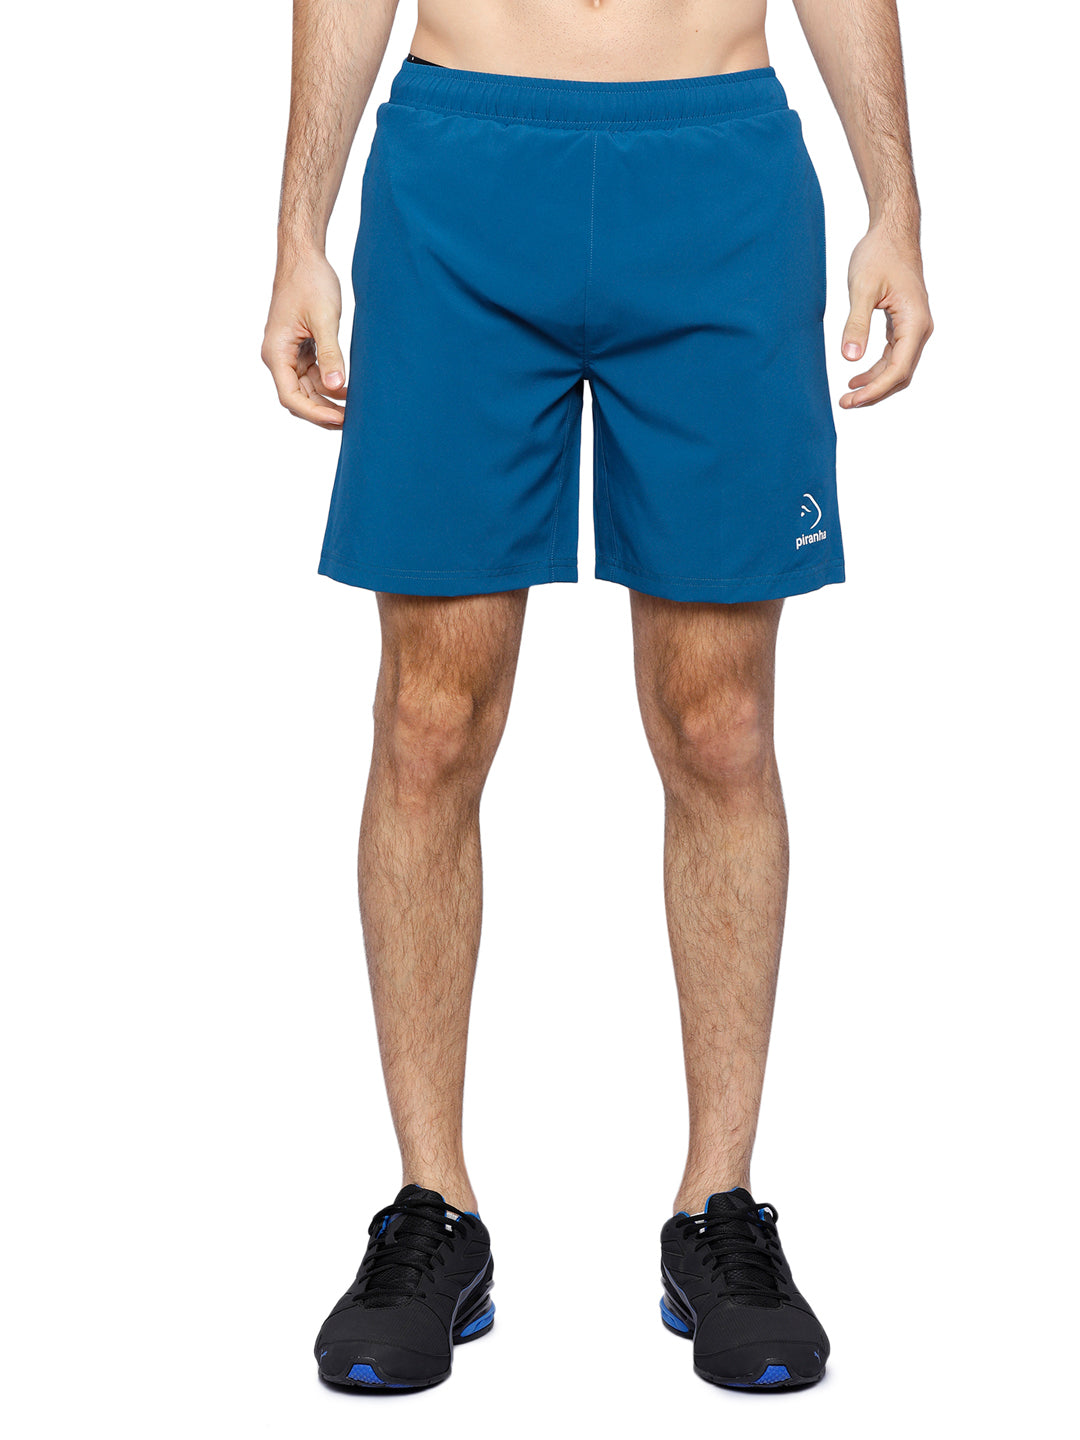 Piranha Men's Teal Shorts - S170